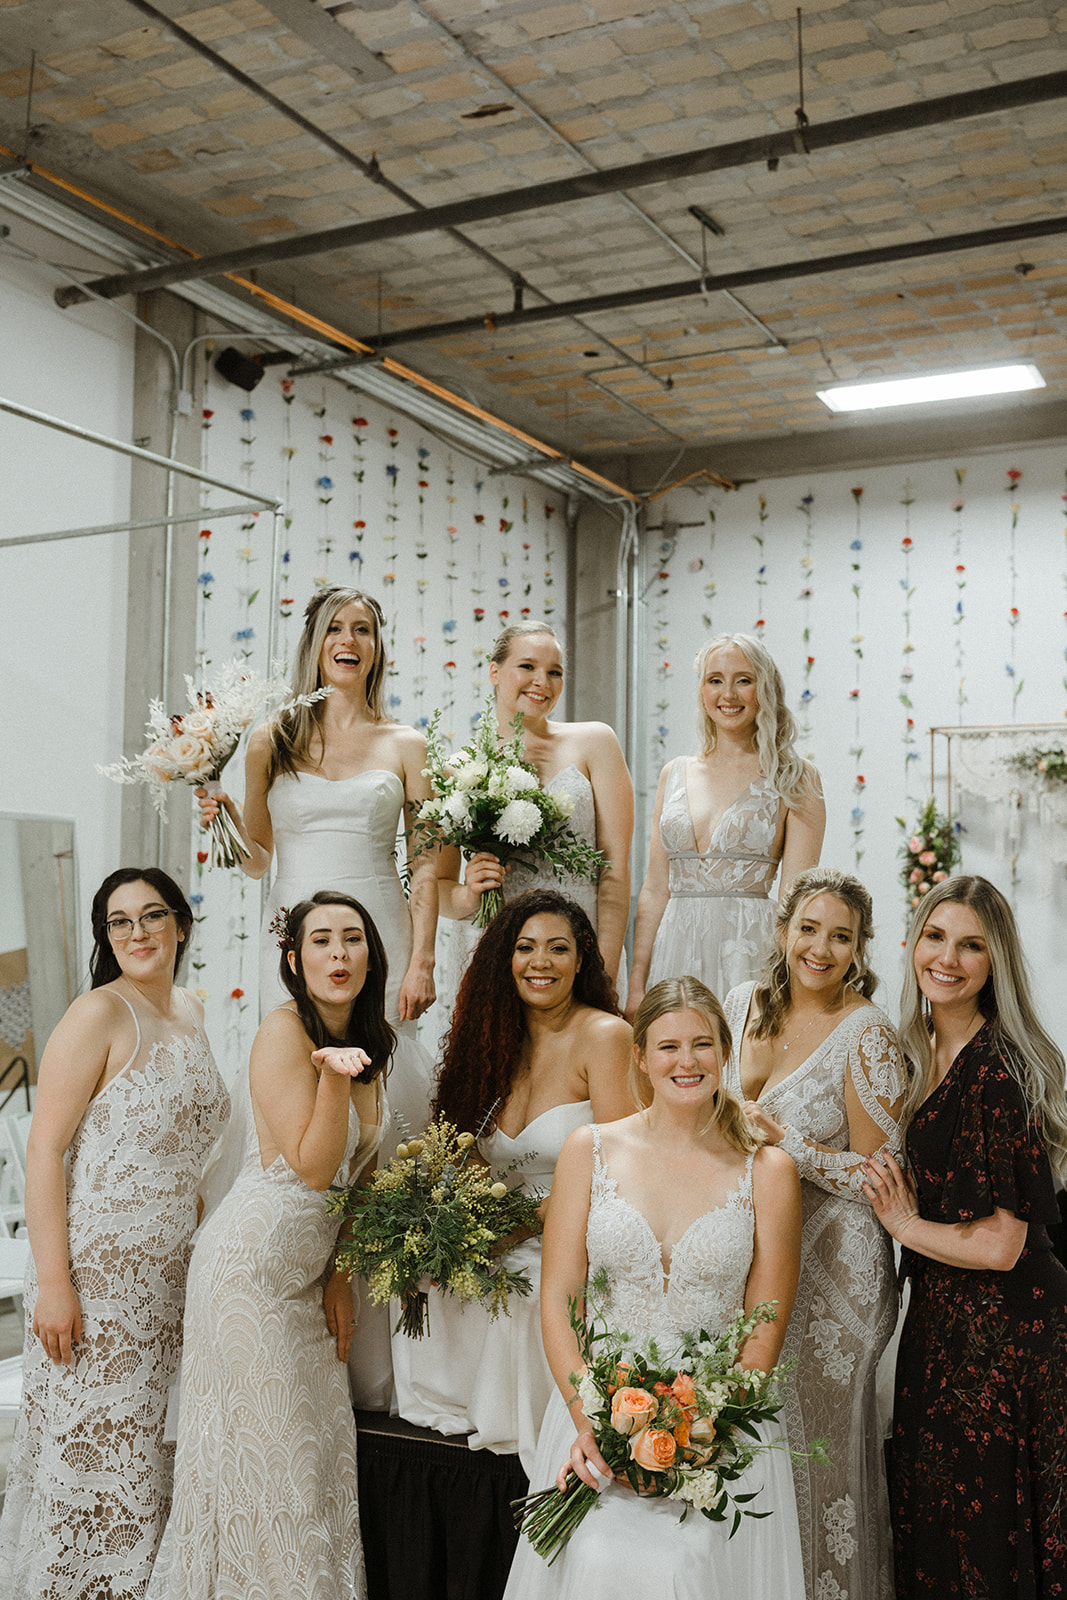 spokane wedding dress all models post fashion show owner cassie david